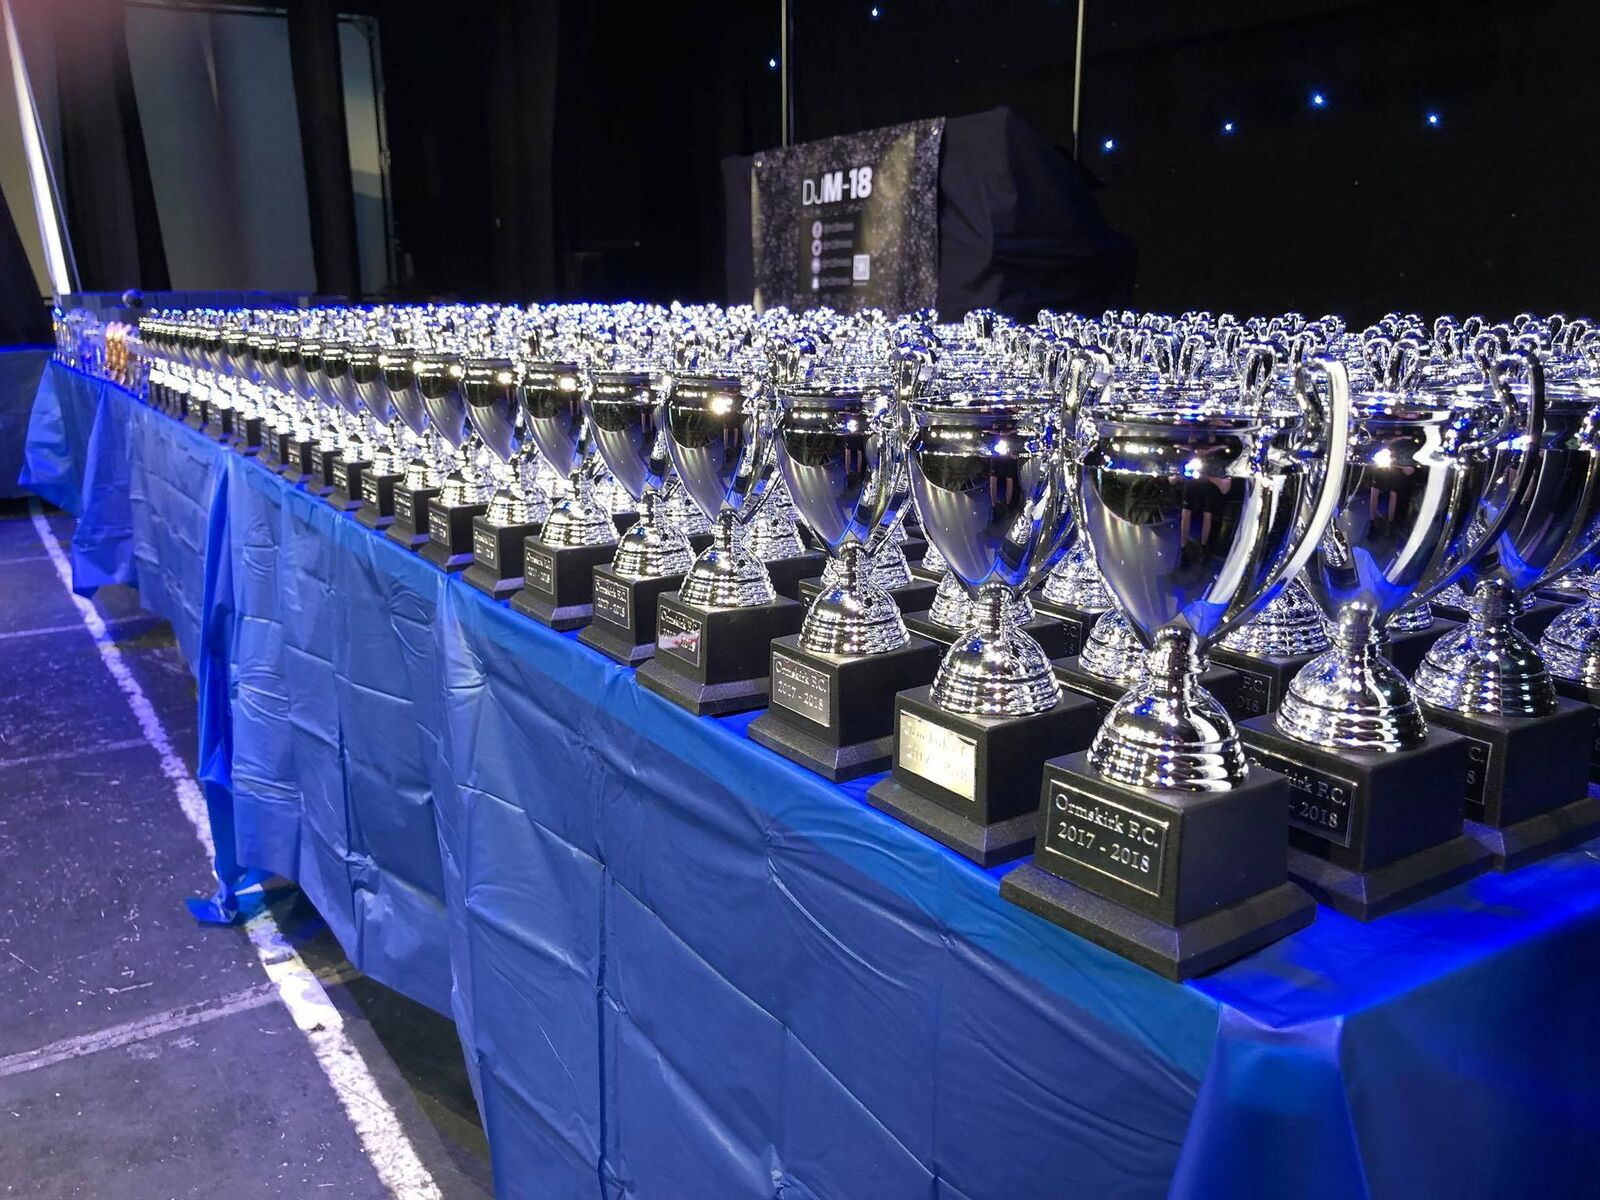 2017/18 Awards Presentations a Success Yet Again